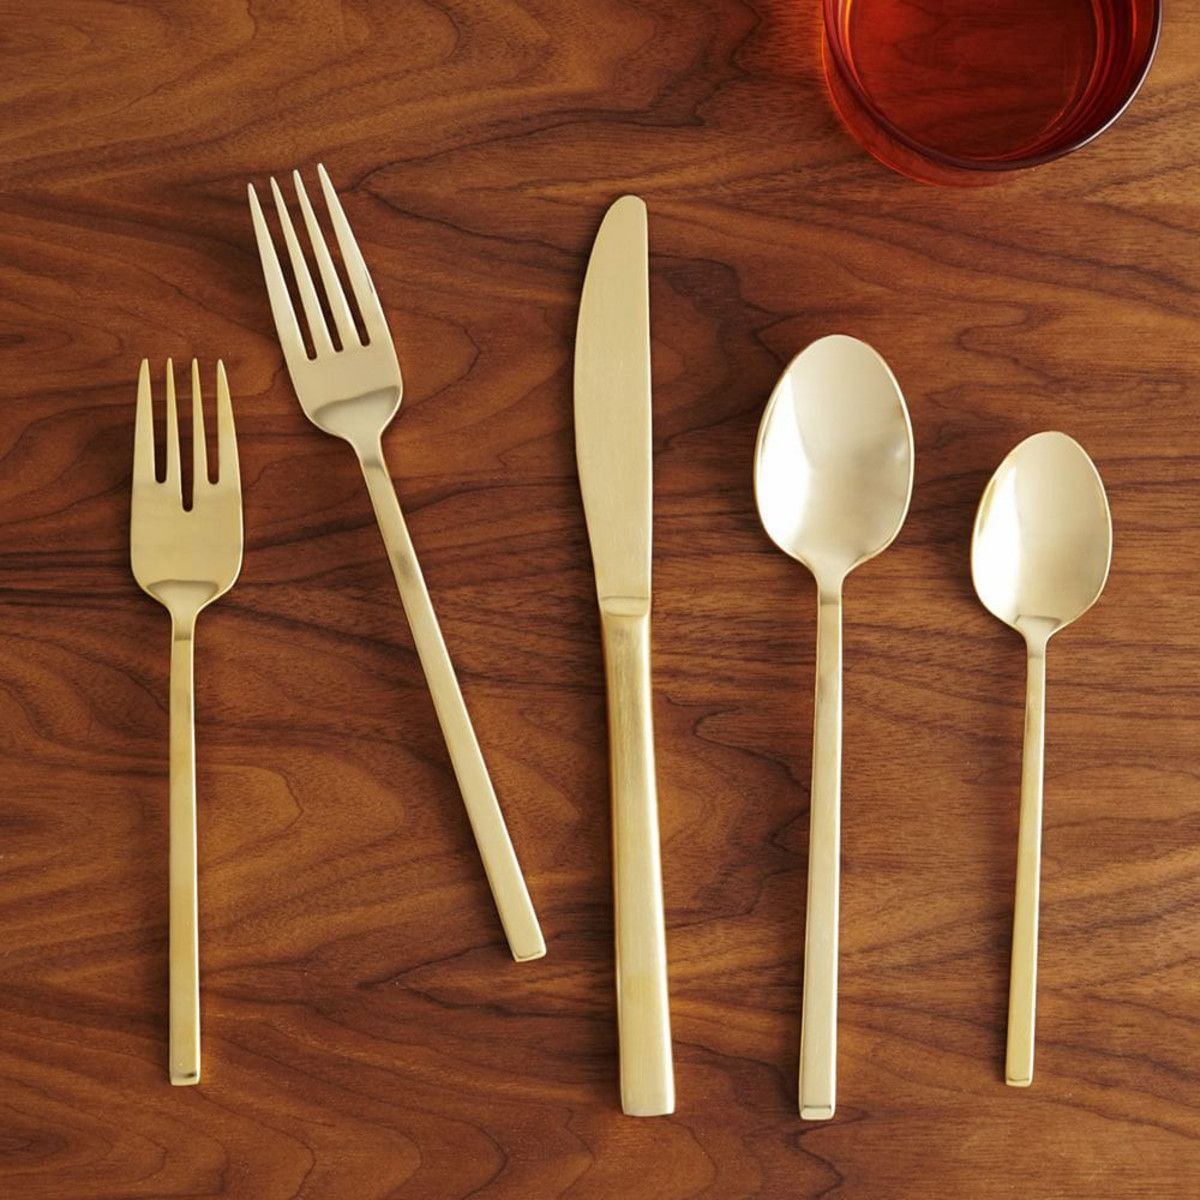 The Gold Flatware Trend Will Completely Modernize Your Table